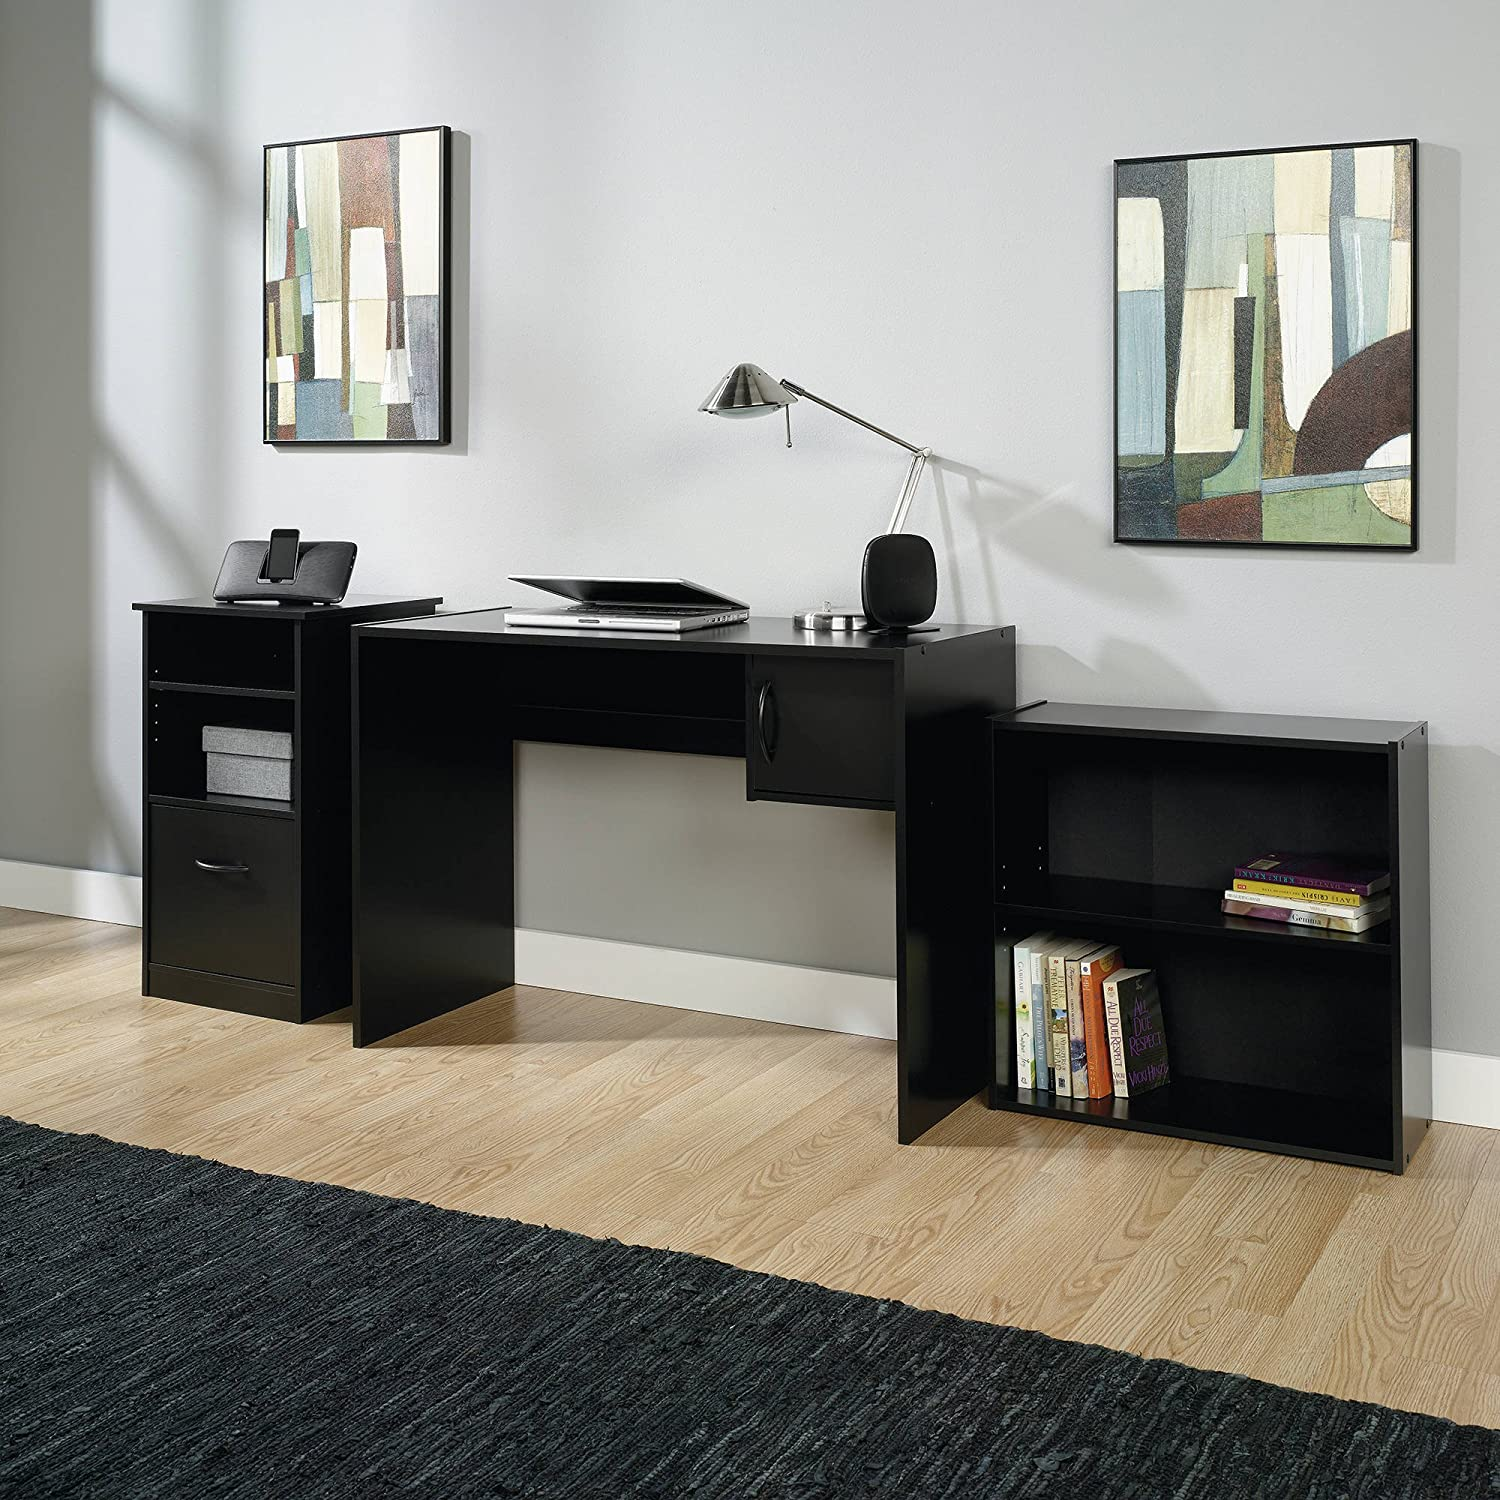 3 piece executive furniture office set matching bookcase desk and cabinet with an elegant black finish classic workstation design perfect for organizing